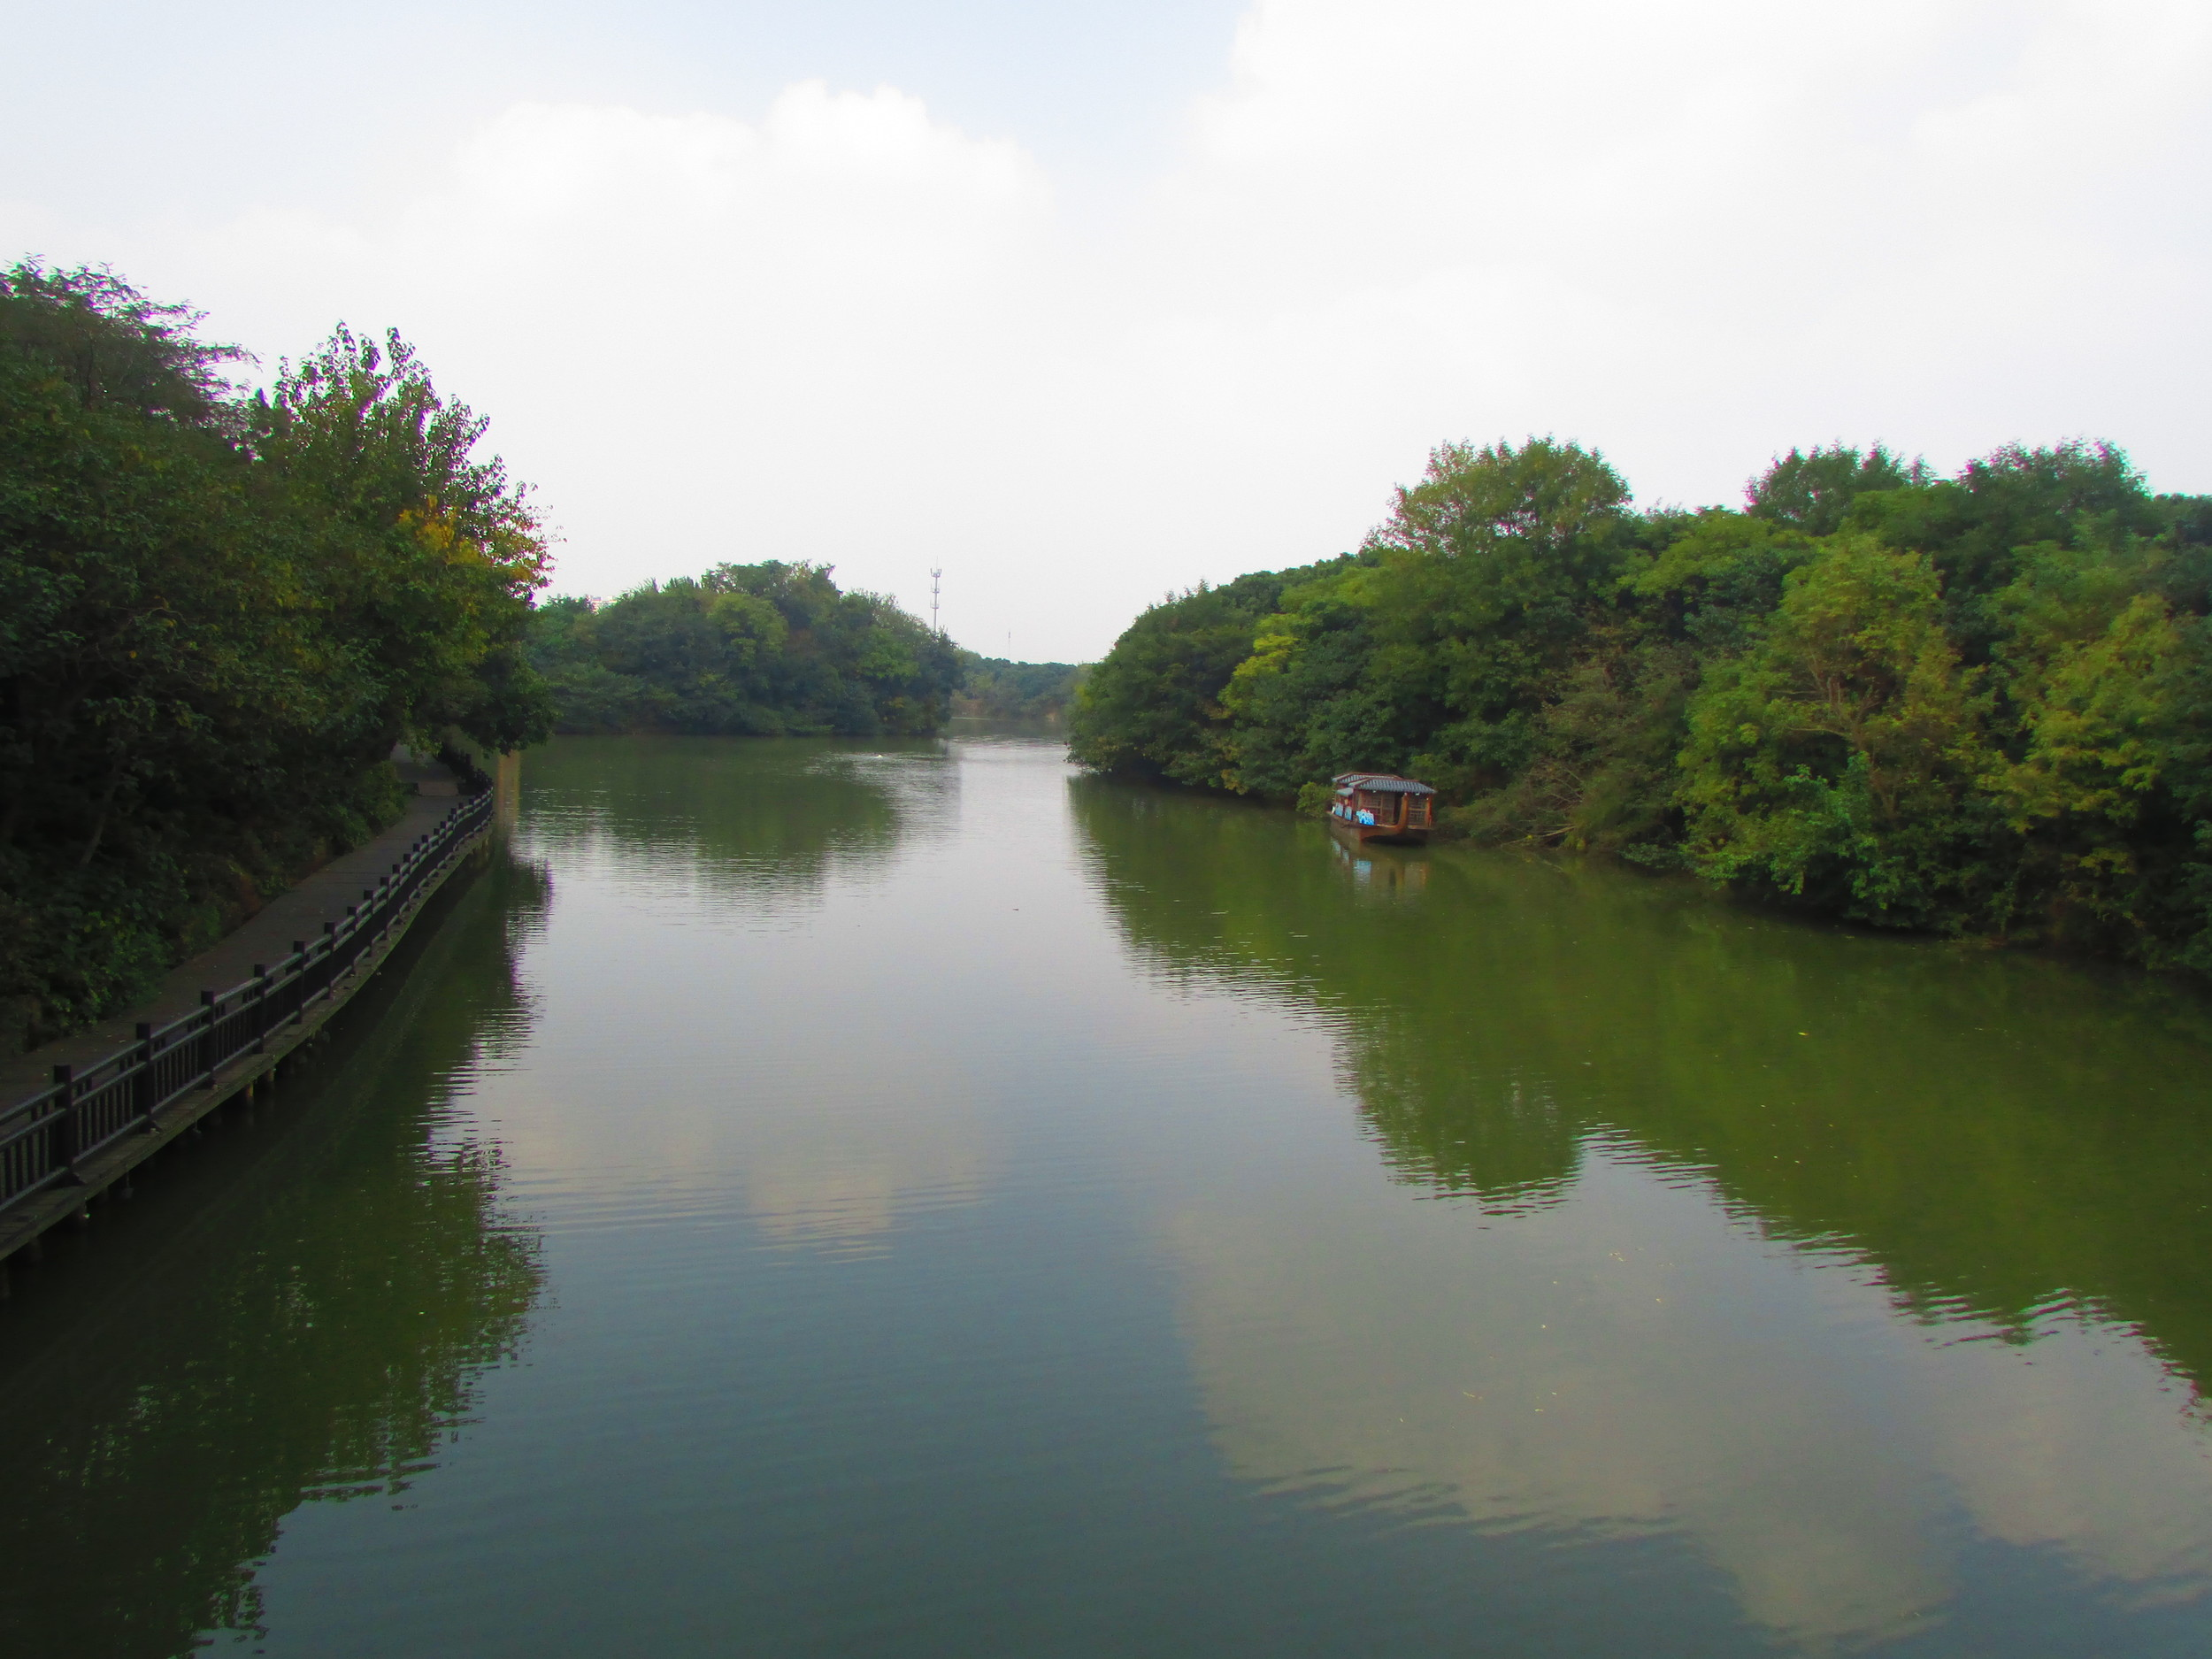 The scenic gardens inside the Yancheng park offer some excellent reflections.